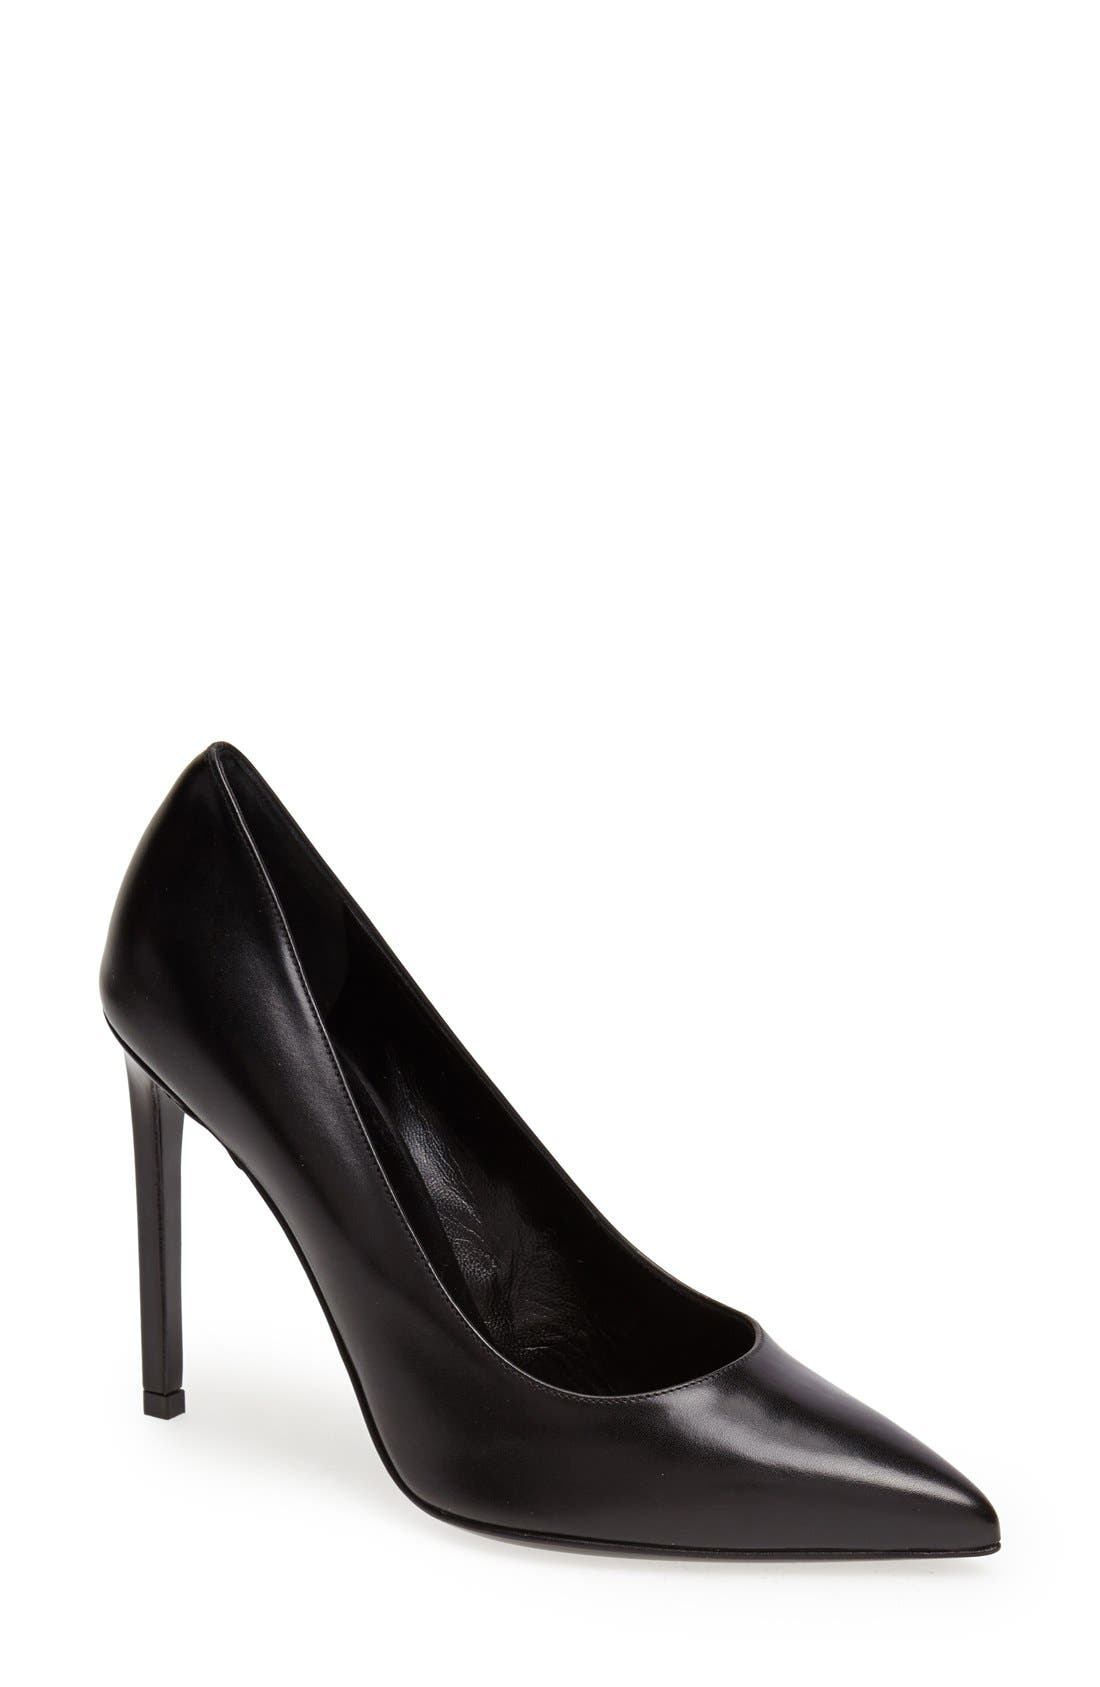 Main Image - Saint Laurent 'Paris' Pointy Toe Pump